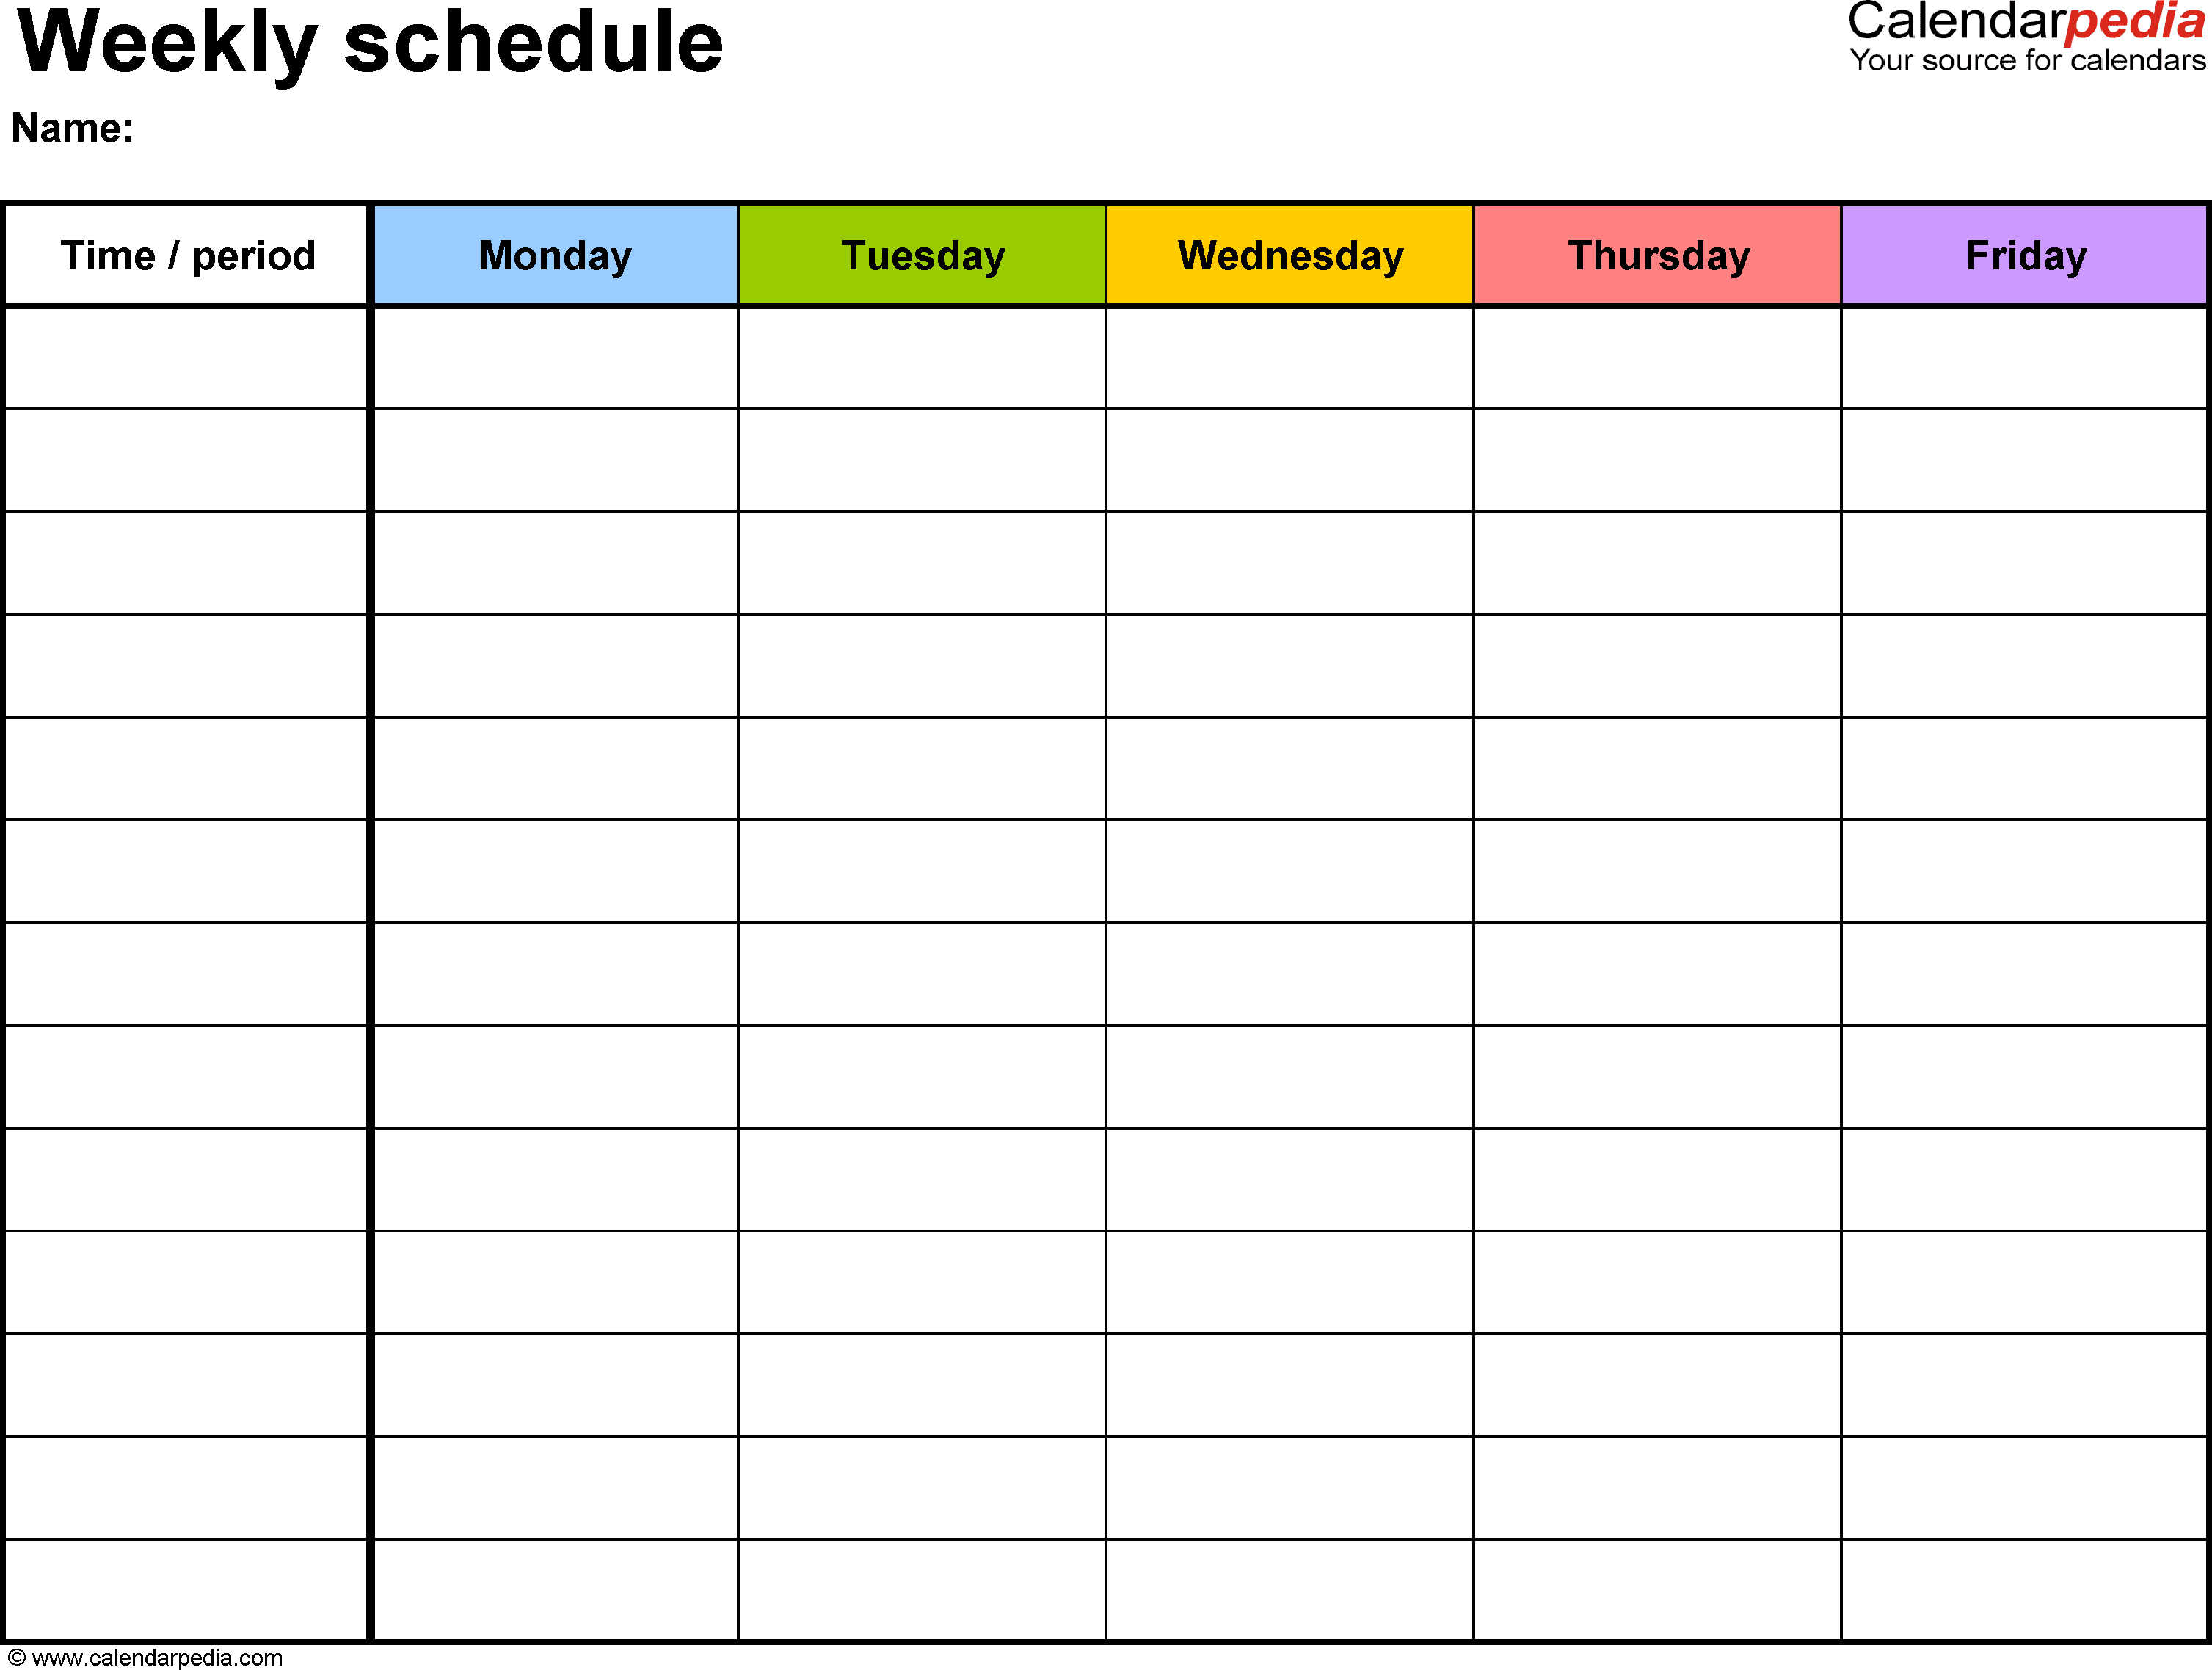 Weekly Schedule Template For Pdf Version 1: Landscape, 1